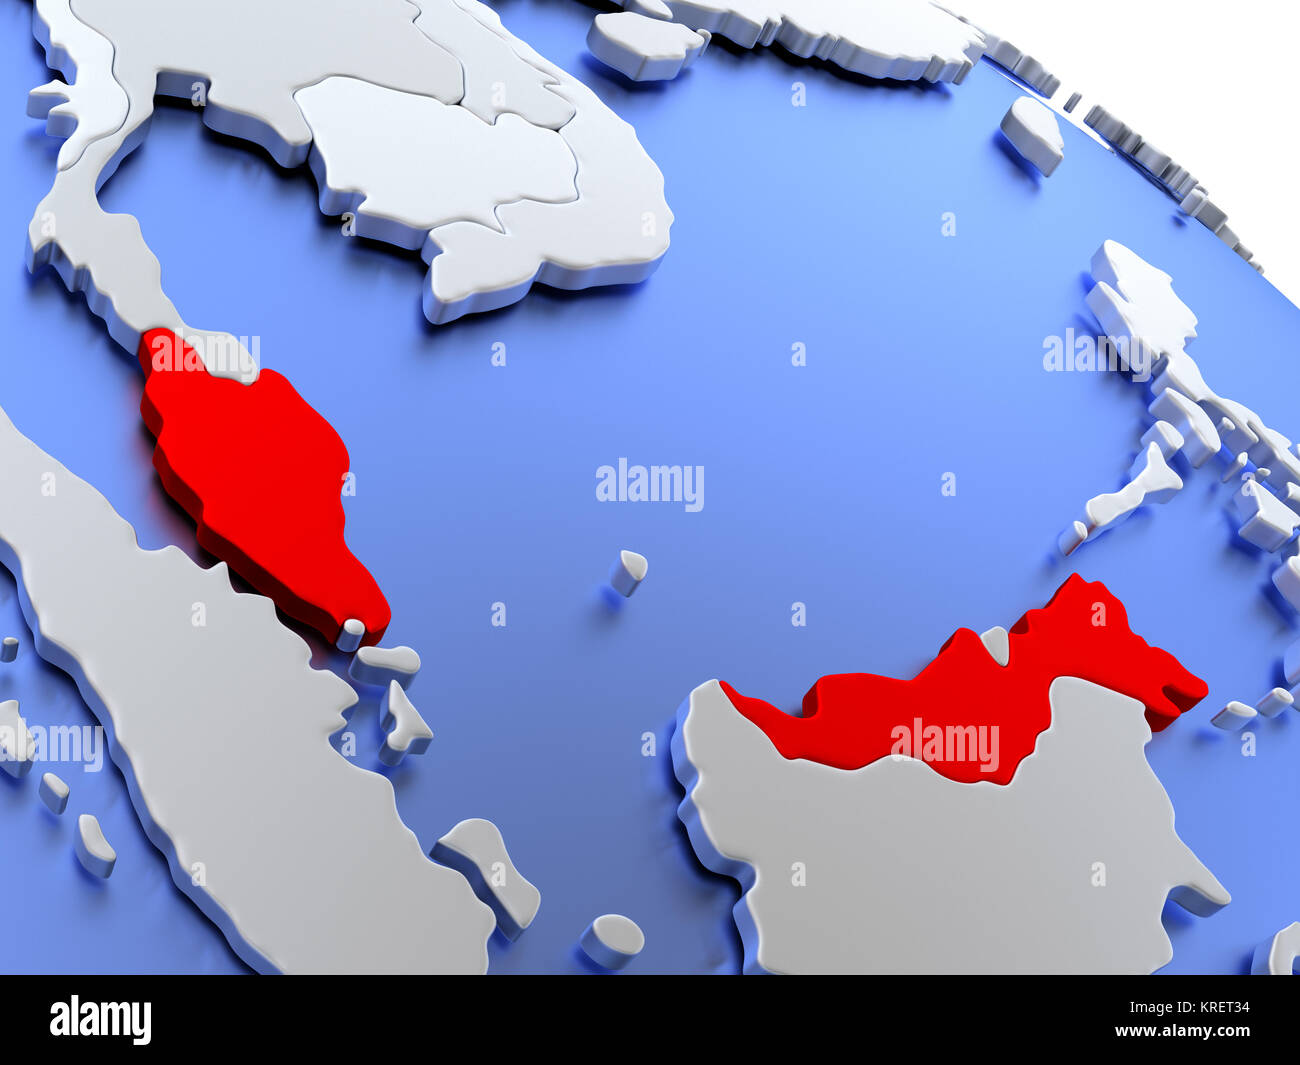 Malaysia on world map Stock Photo: 169356632 - Alamy